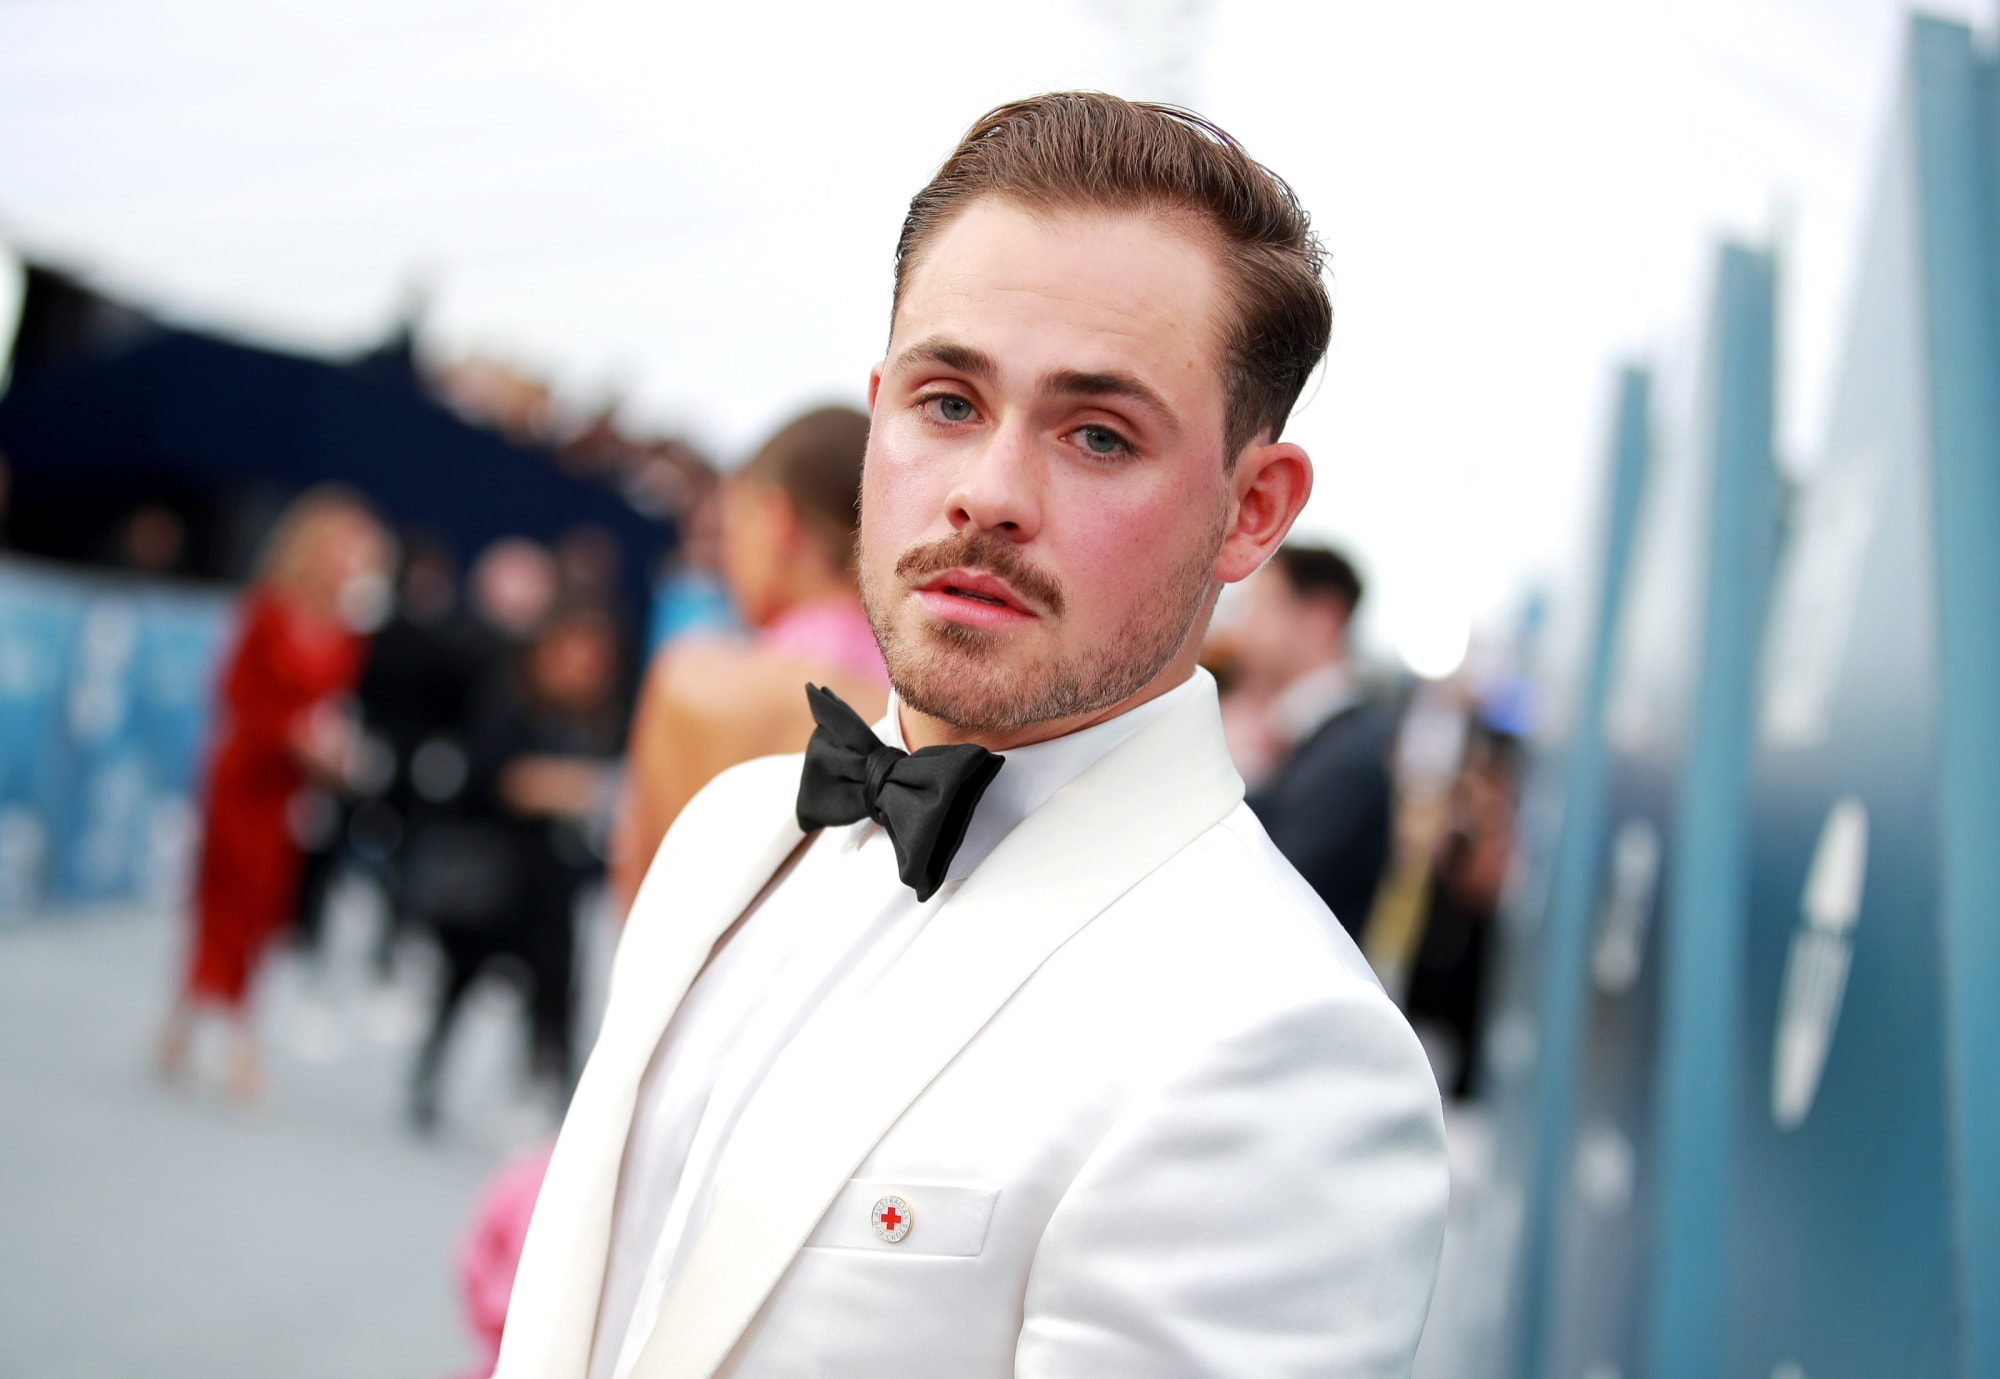 Fantastic Four: Dacre Montgomery suits up as Human Torch in stunning image